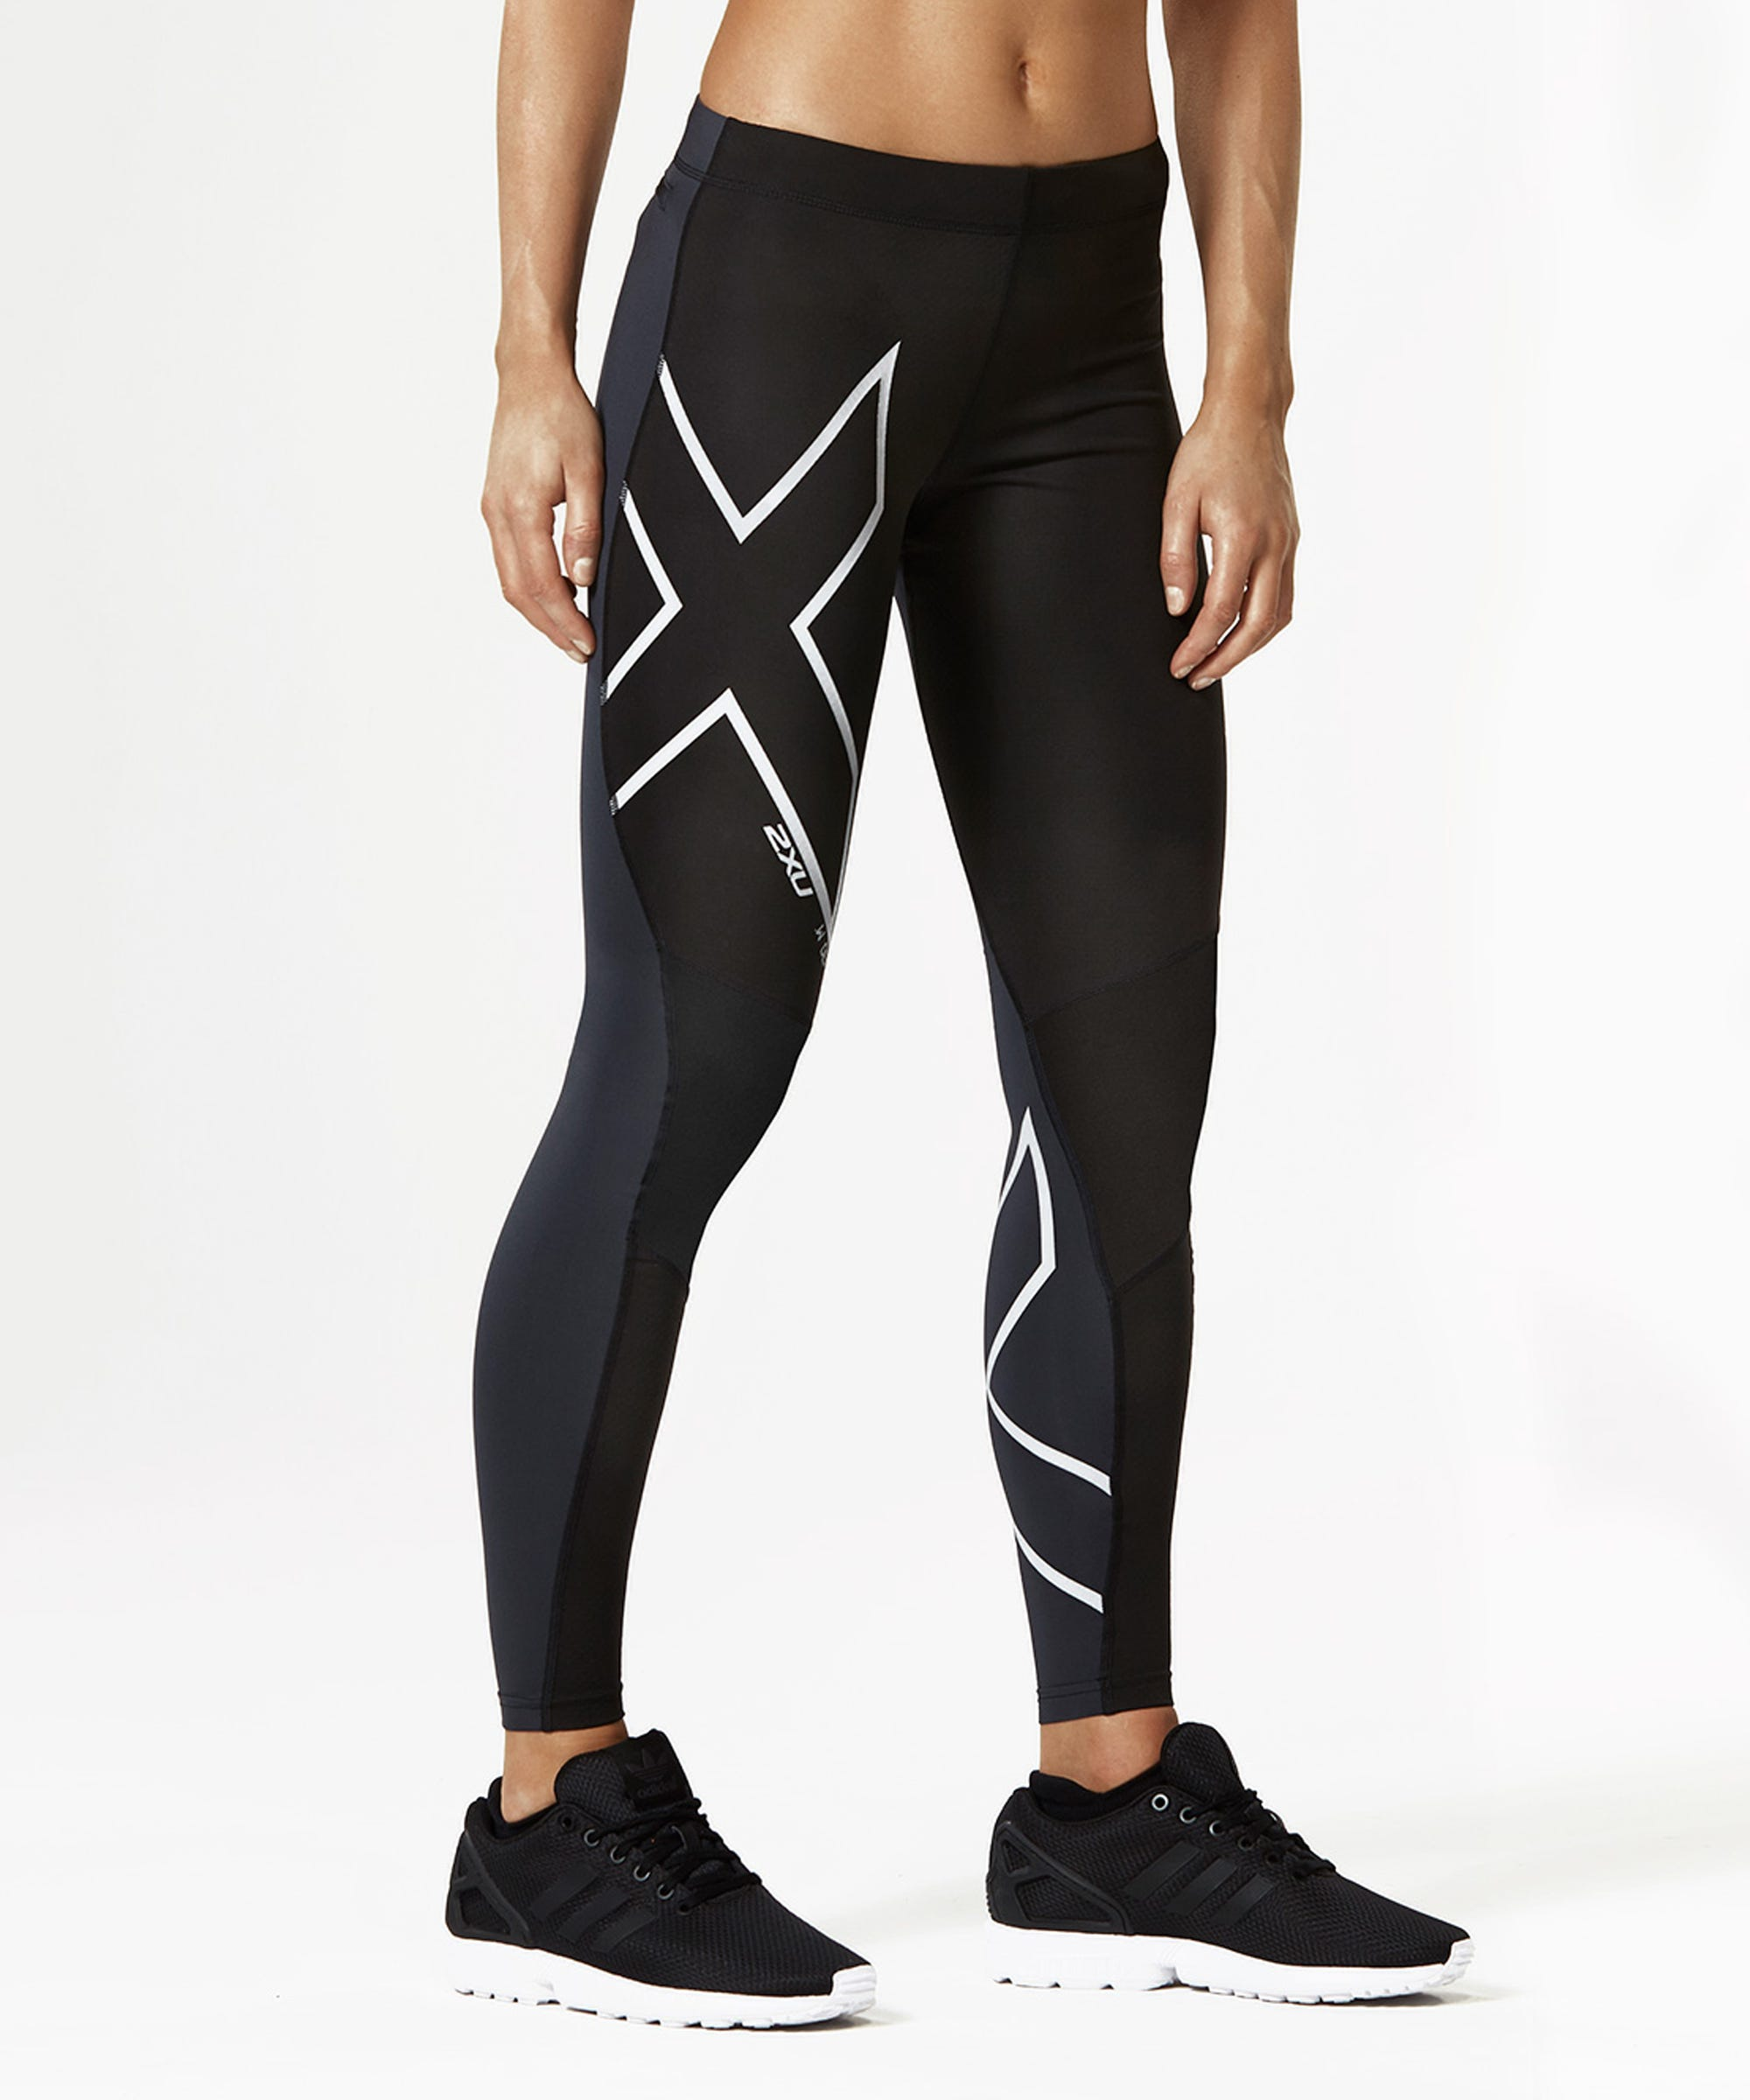 5d670db9525524 Best Warm Leggings For Winter Workouts Clothes